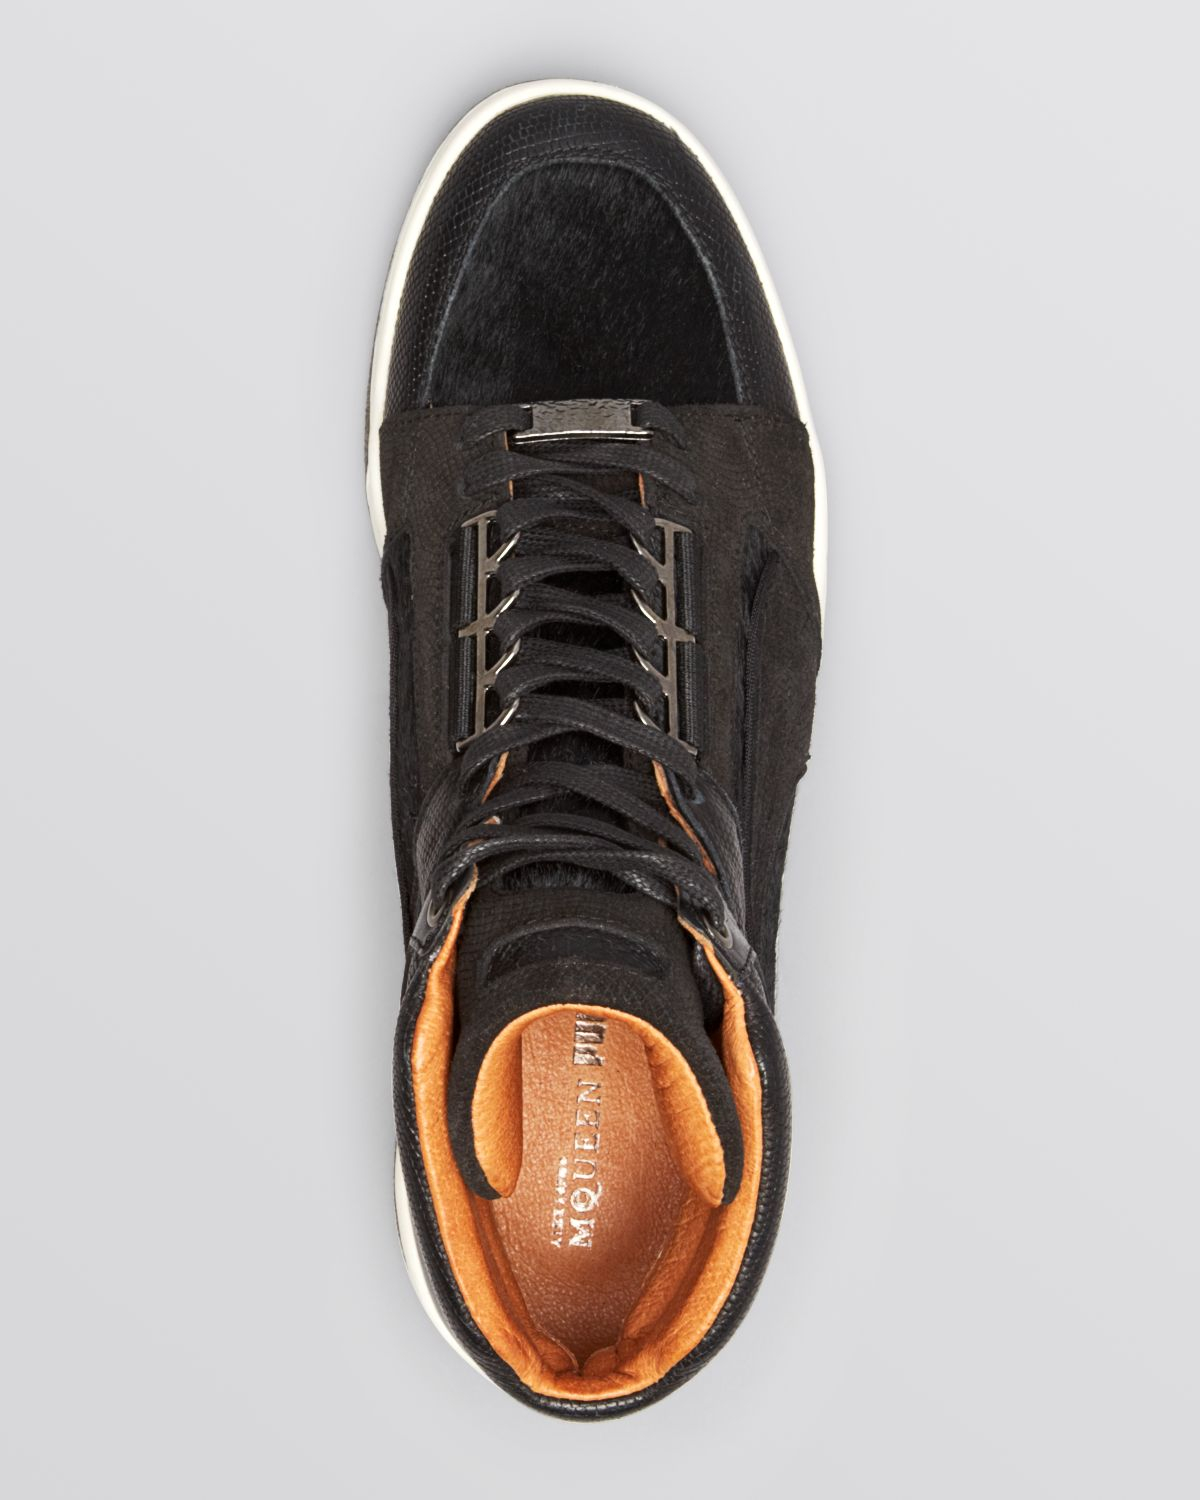 PUMA Mens Slipstream X Made in Italy Midtop Sneaker